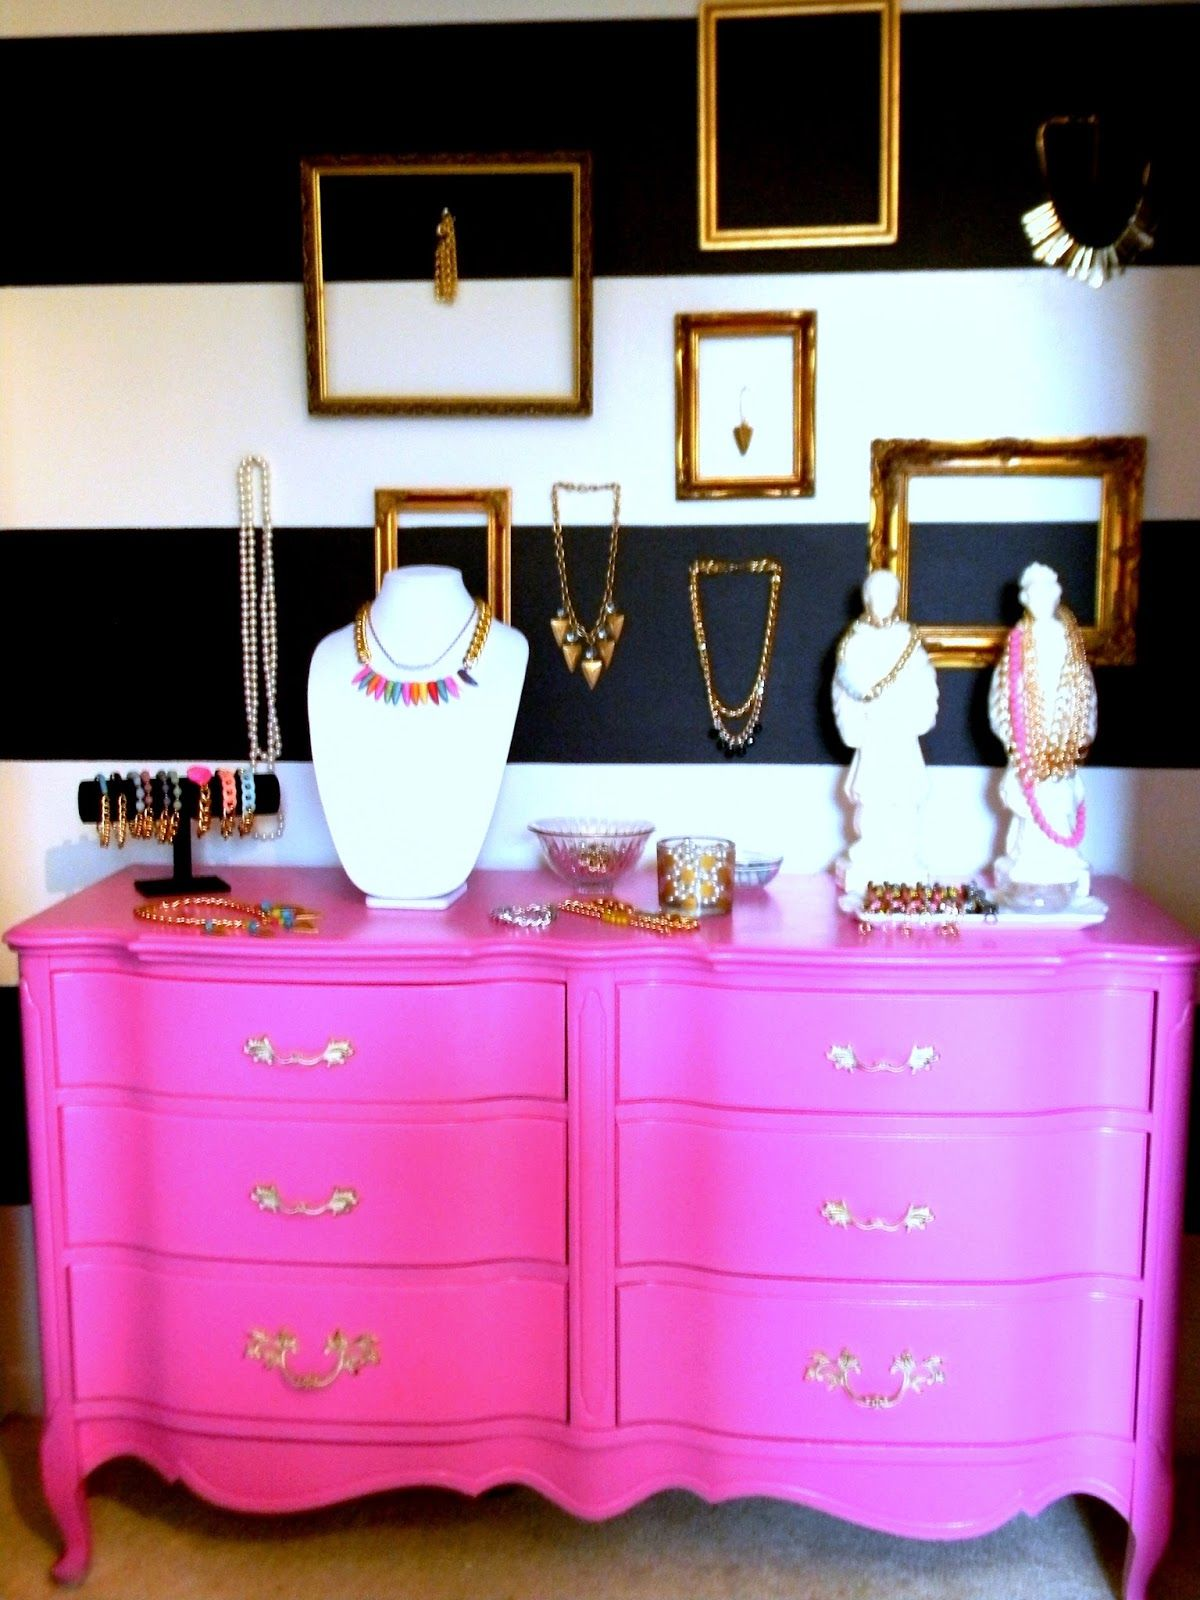 Best Black And White Walls With Bright Pink French Dresser 400 x 300